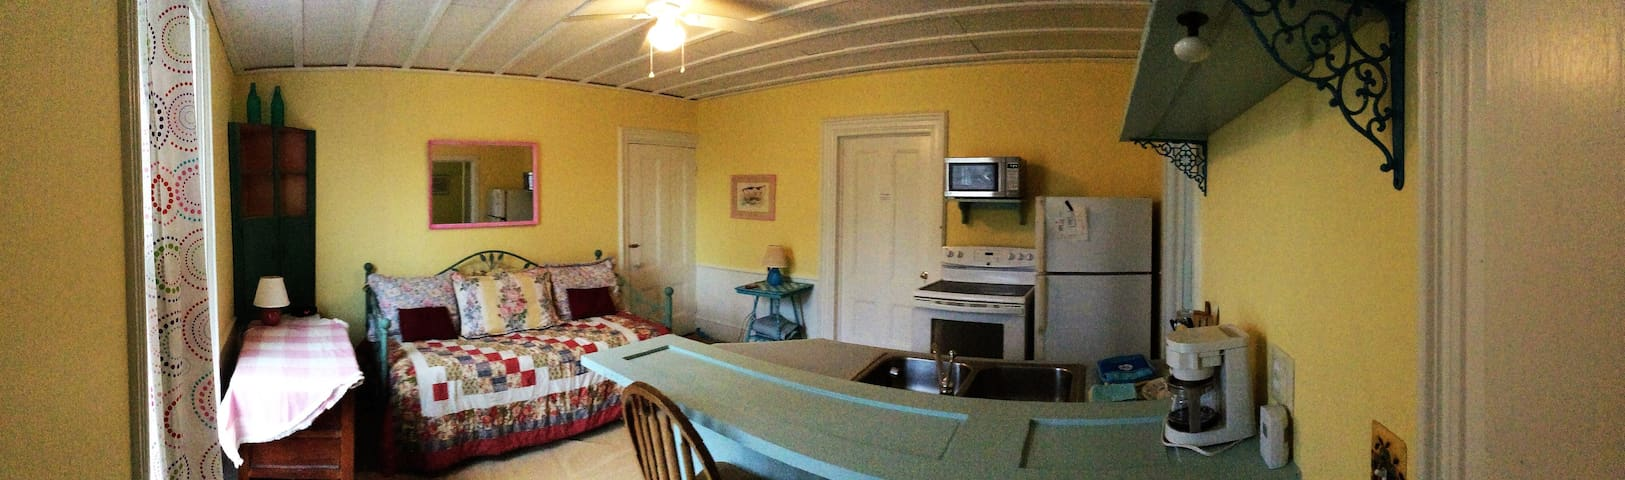 Vinalhaven Island Private 1 Room Efficiency w/Bath - Vinalhaven - Leilighet